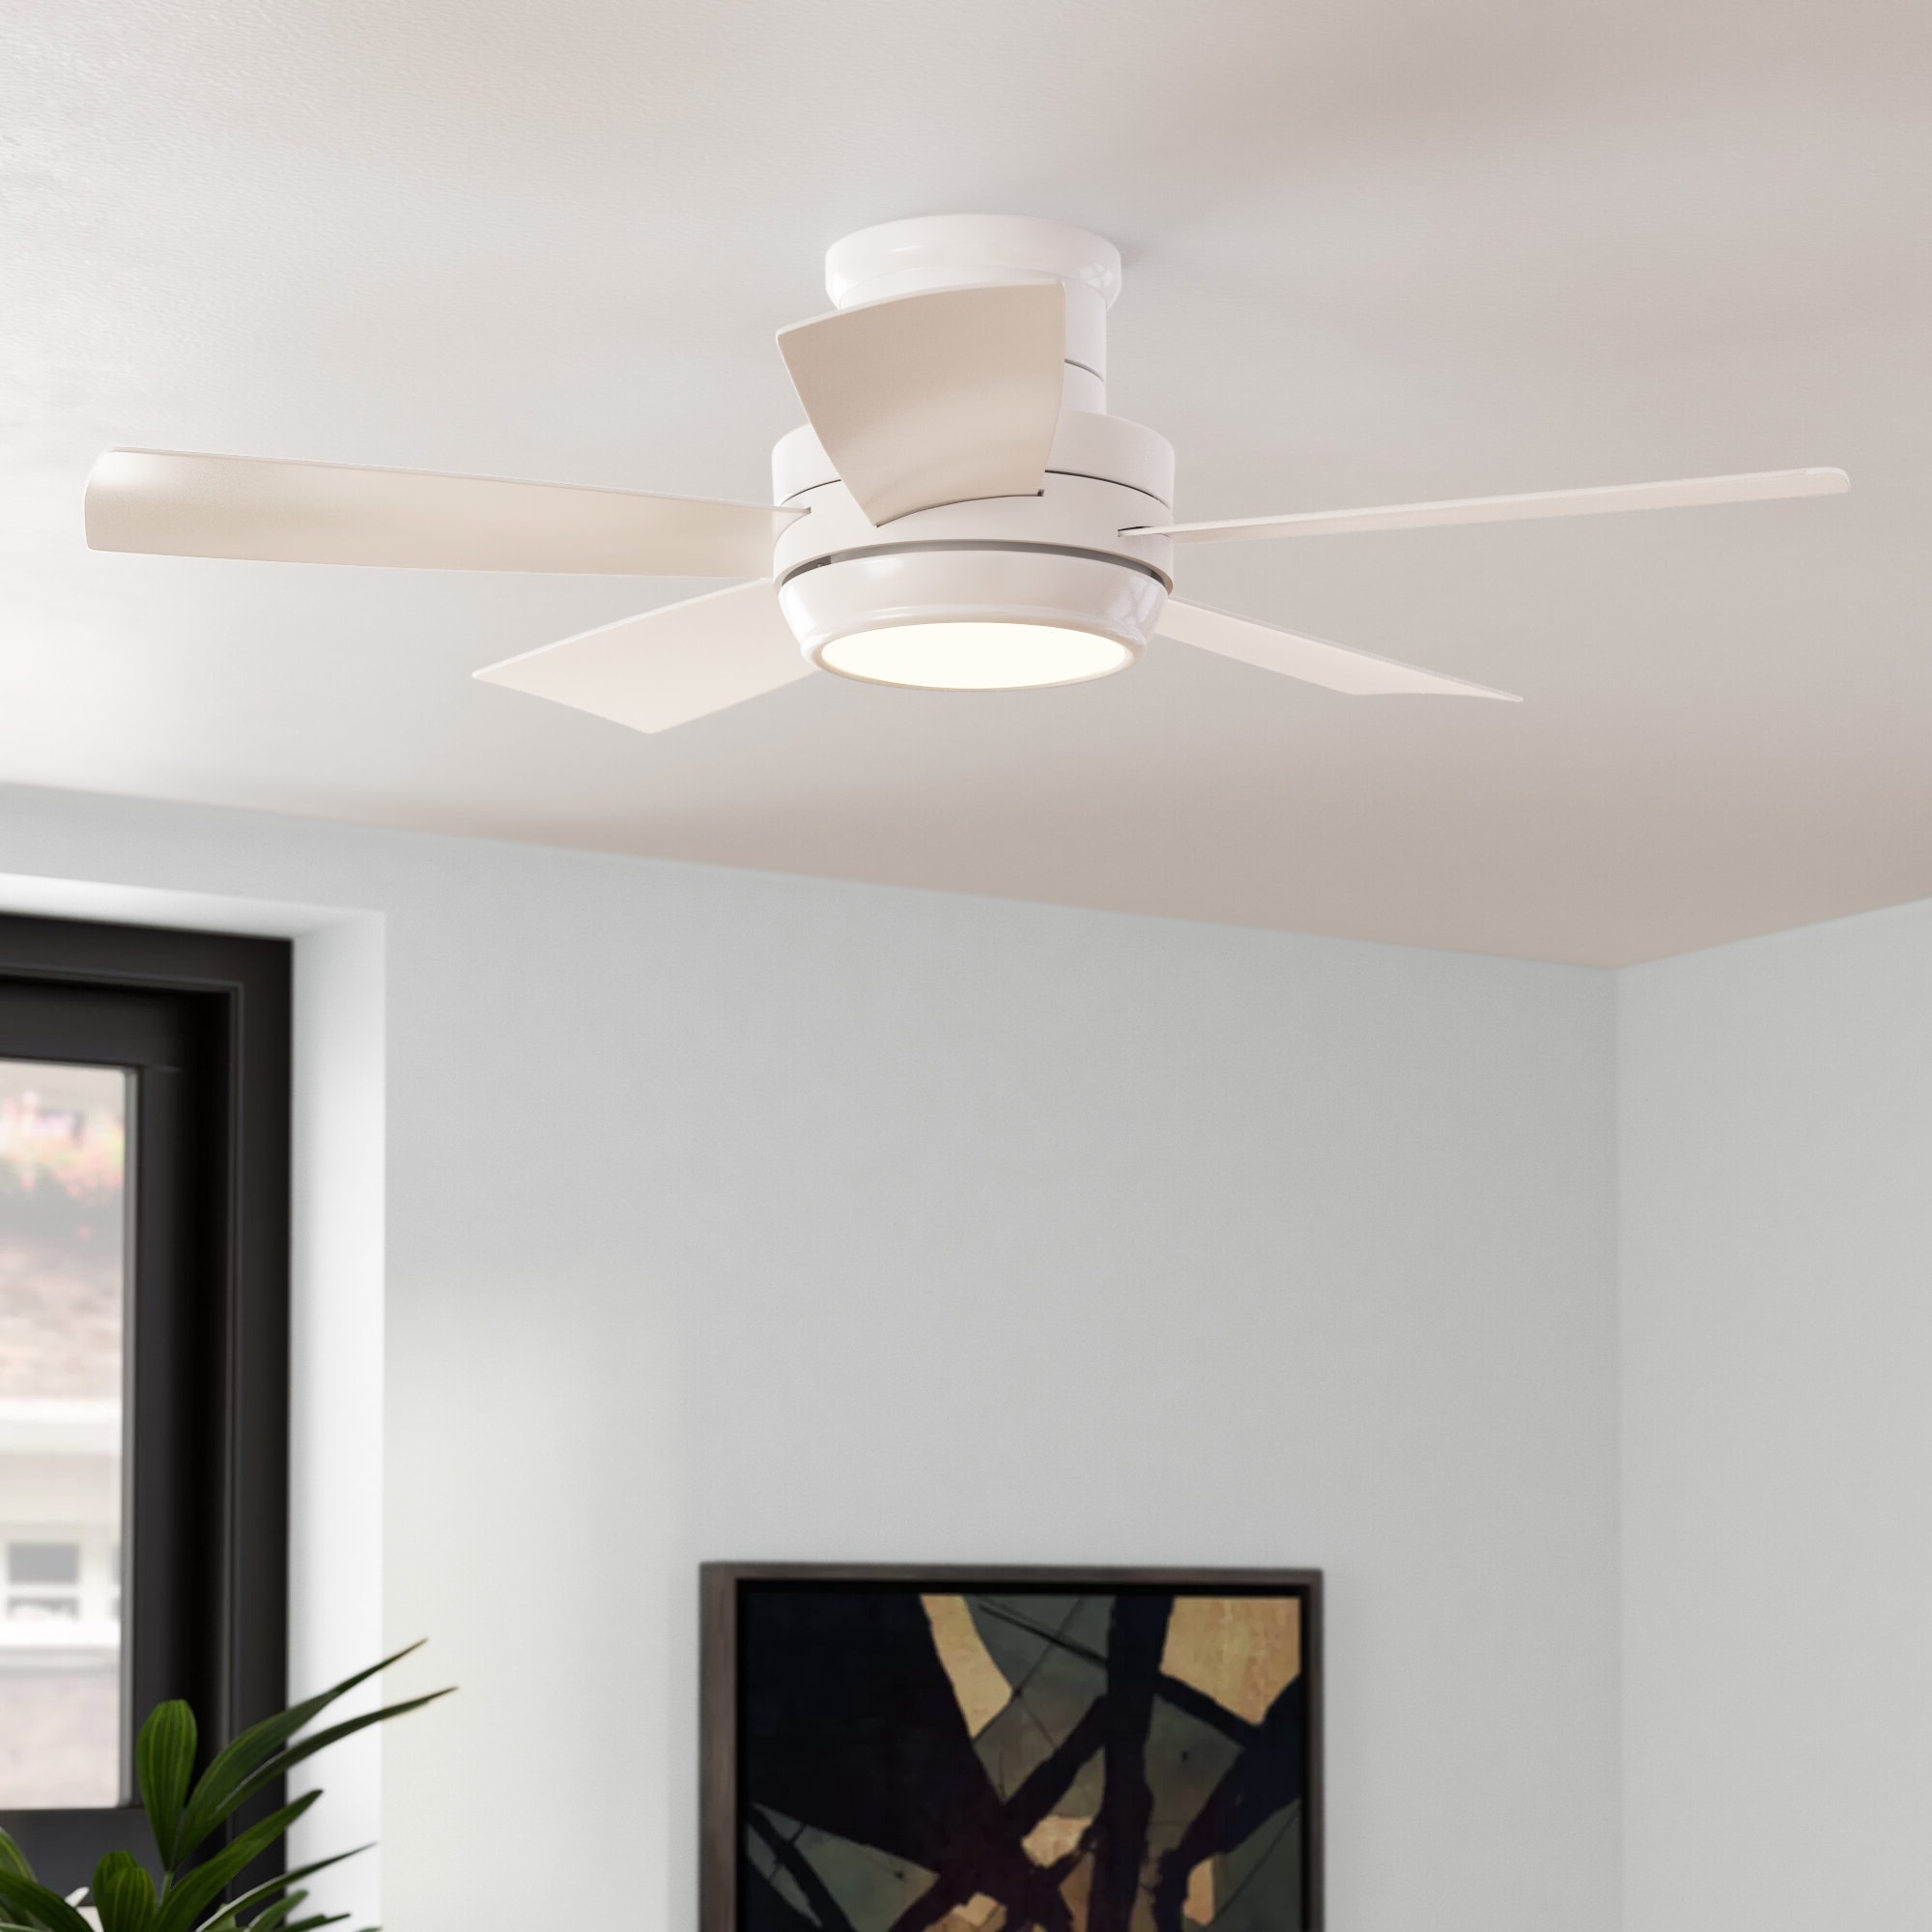 """Most Up To Date Concept Ii 3 Blade Led Ceiling Fans With Remote With Regard To 44"""" Cedarton Hugger 5 Blade Led Ceiling Fan, Light Kit Included (View 15 of 20)"""